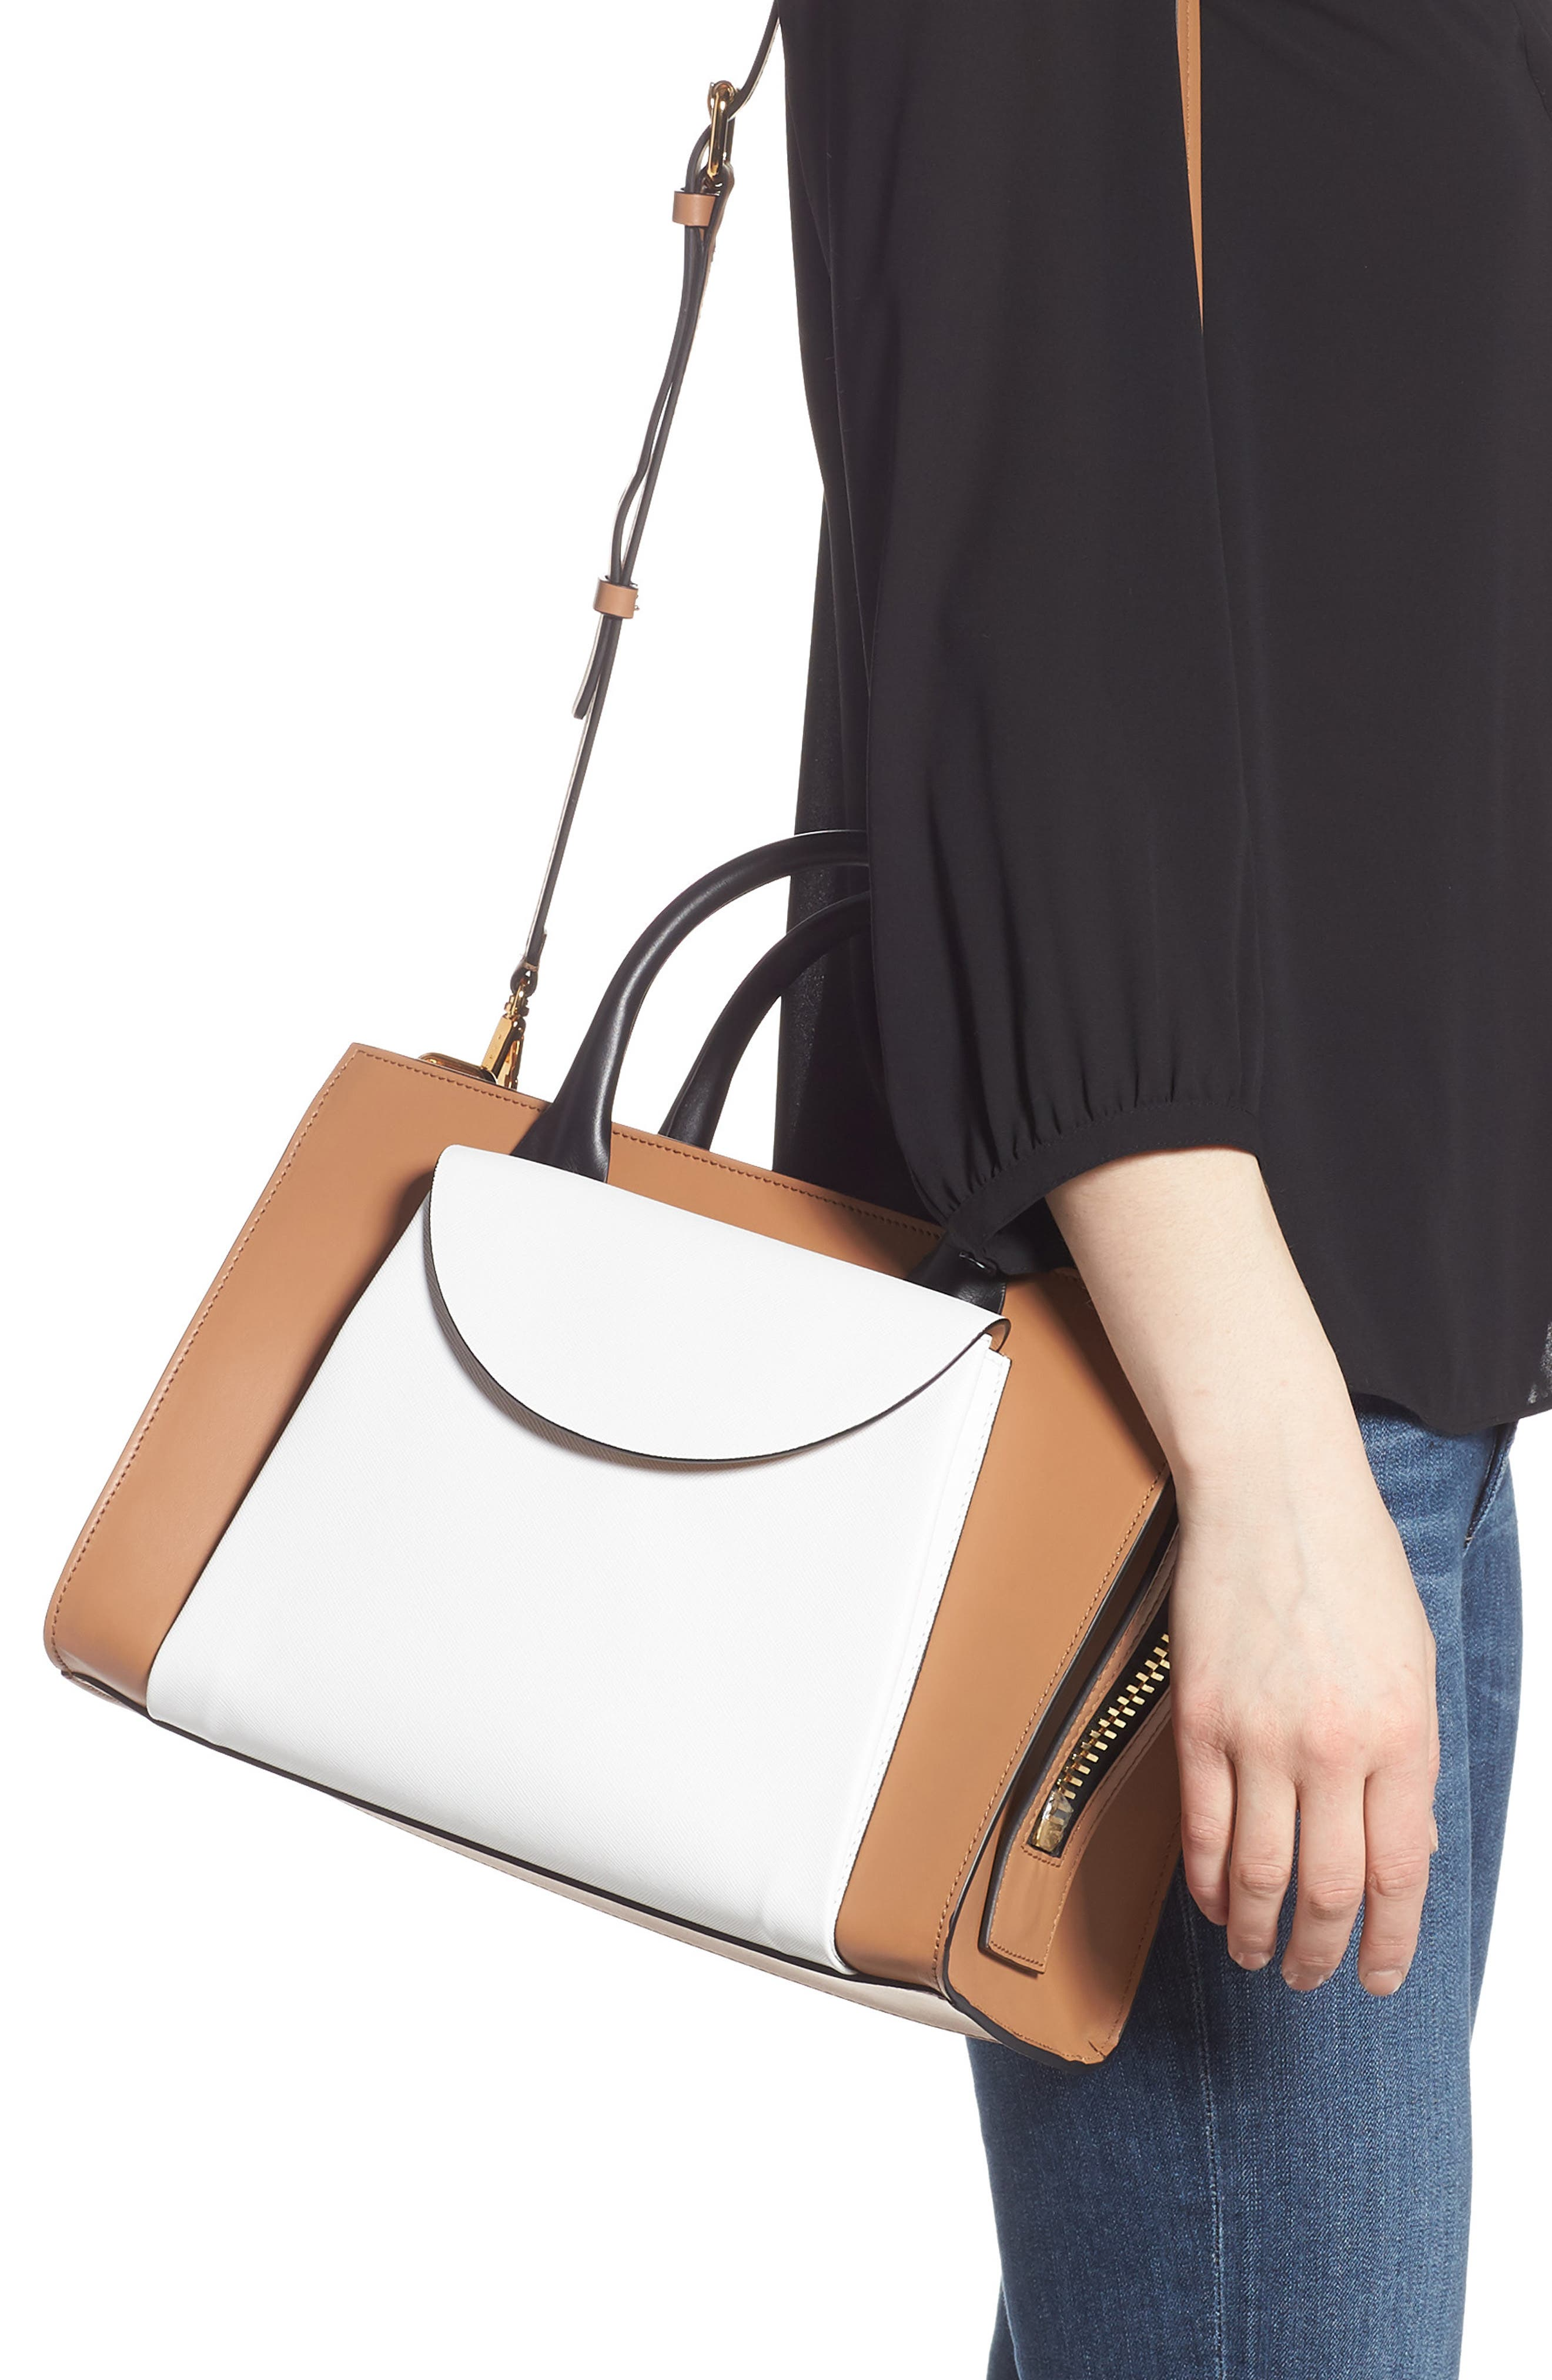 MARNI, Medium Law Colorblock Top Handle Satchel, Alternate thumbnail 2, color, POMPEII/ LIMESTONE/ BLACK